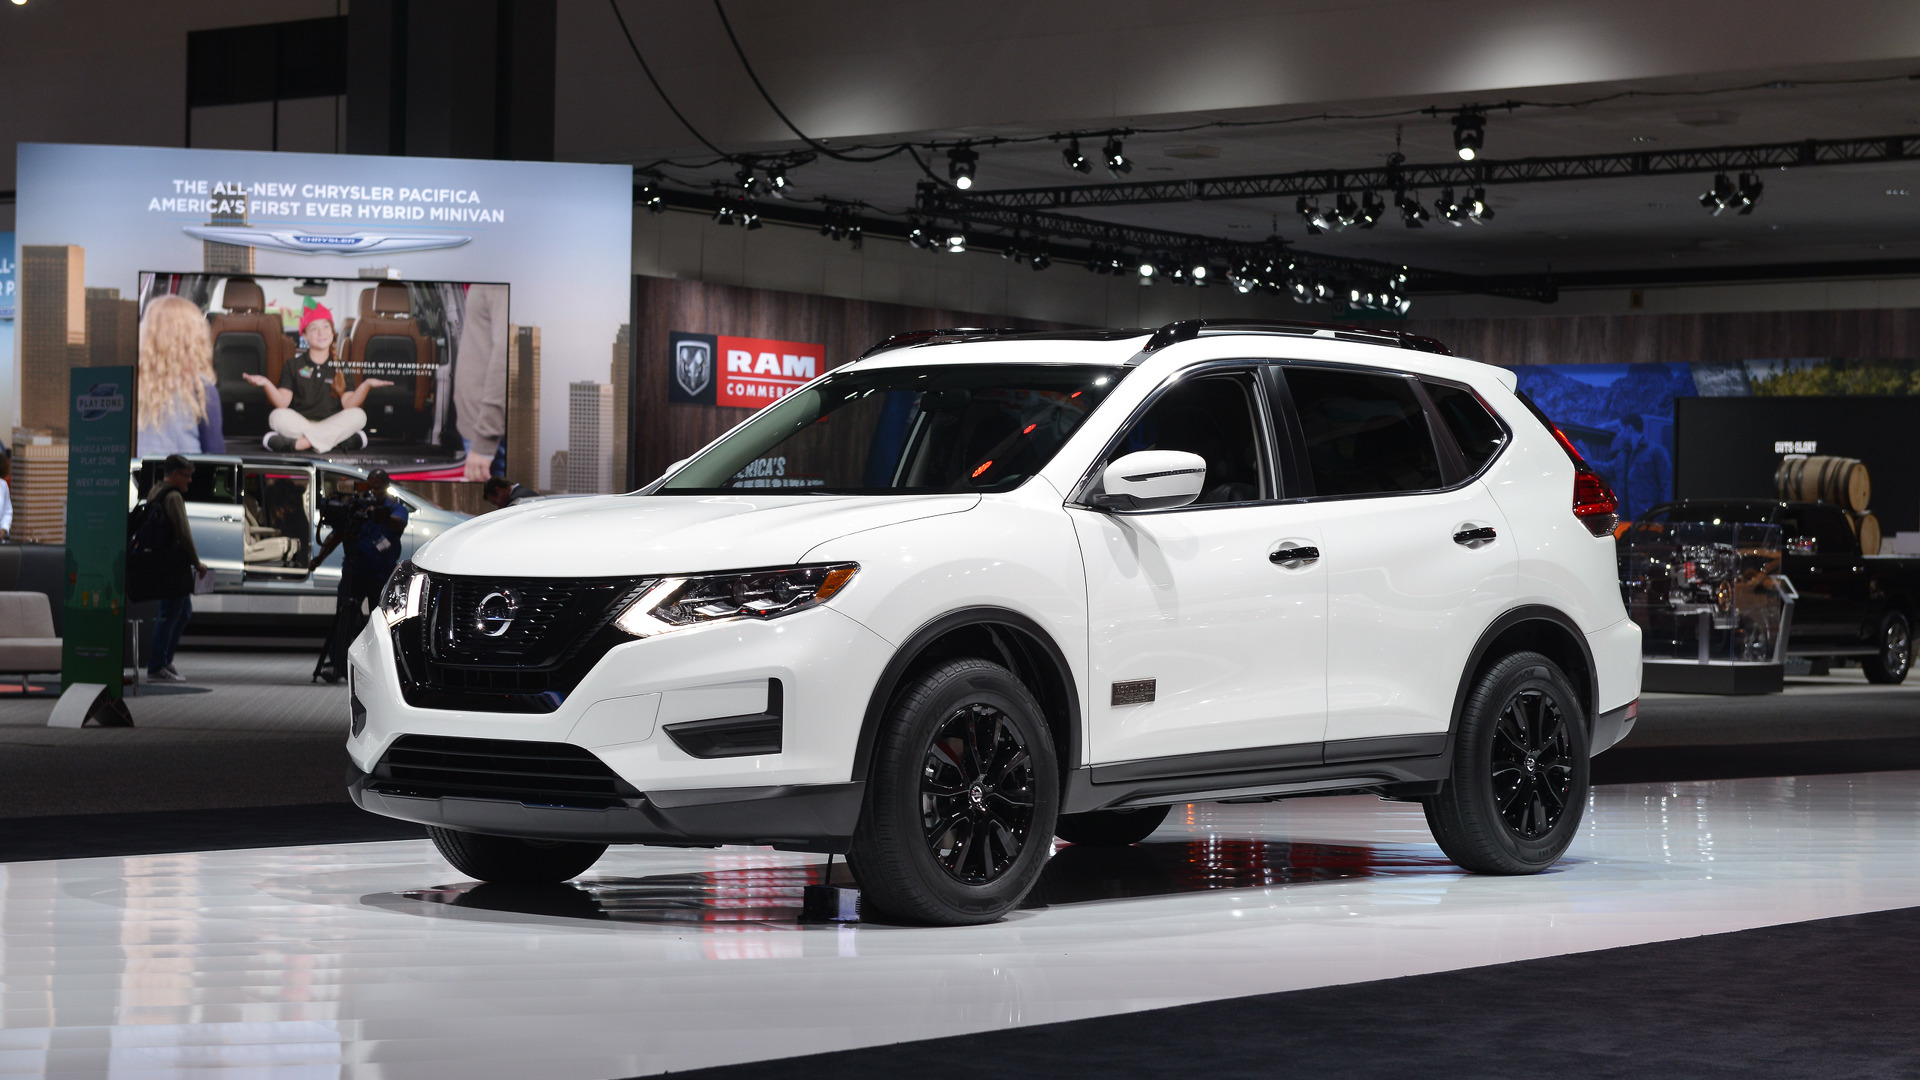 2017 nissan rogue star wars edition lands in l a with tie fighter. Black Bedroom Furniture Sets. Home Design Ideas